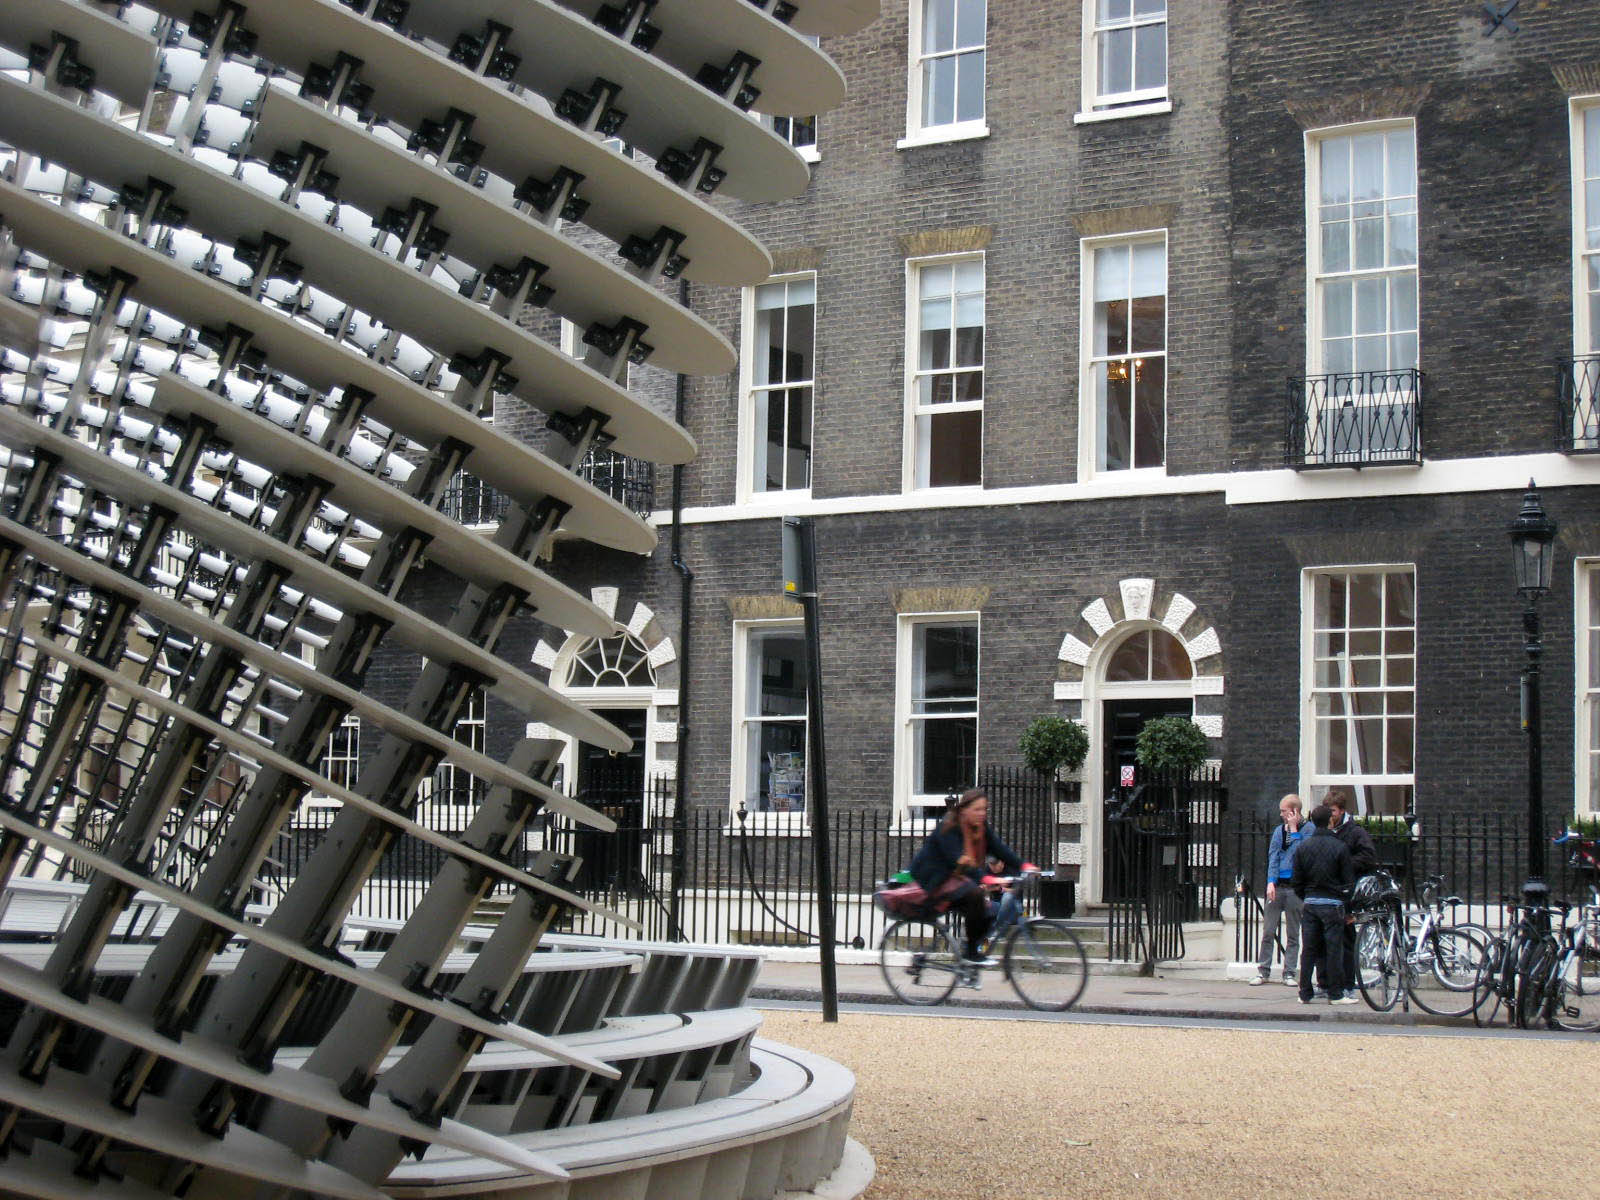 architecture architectural association aa london pavilion education wikipedia colleges courses offering kingdom united higher bedford square kara dempsey members structure